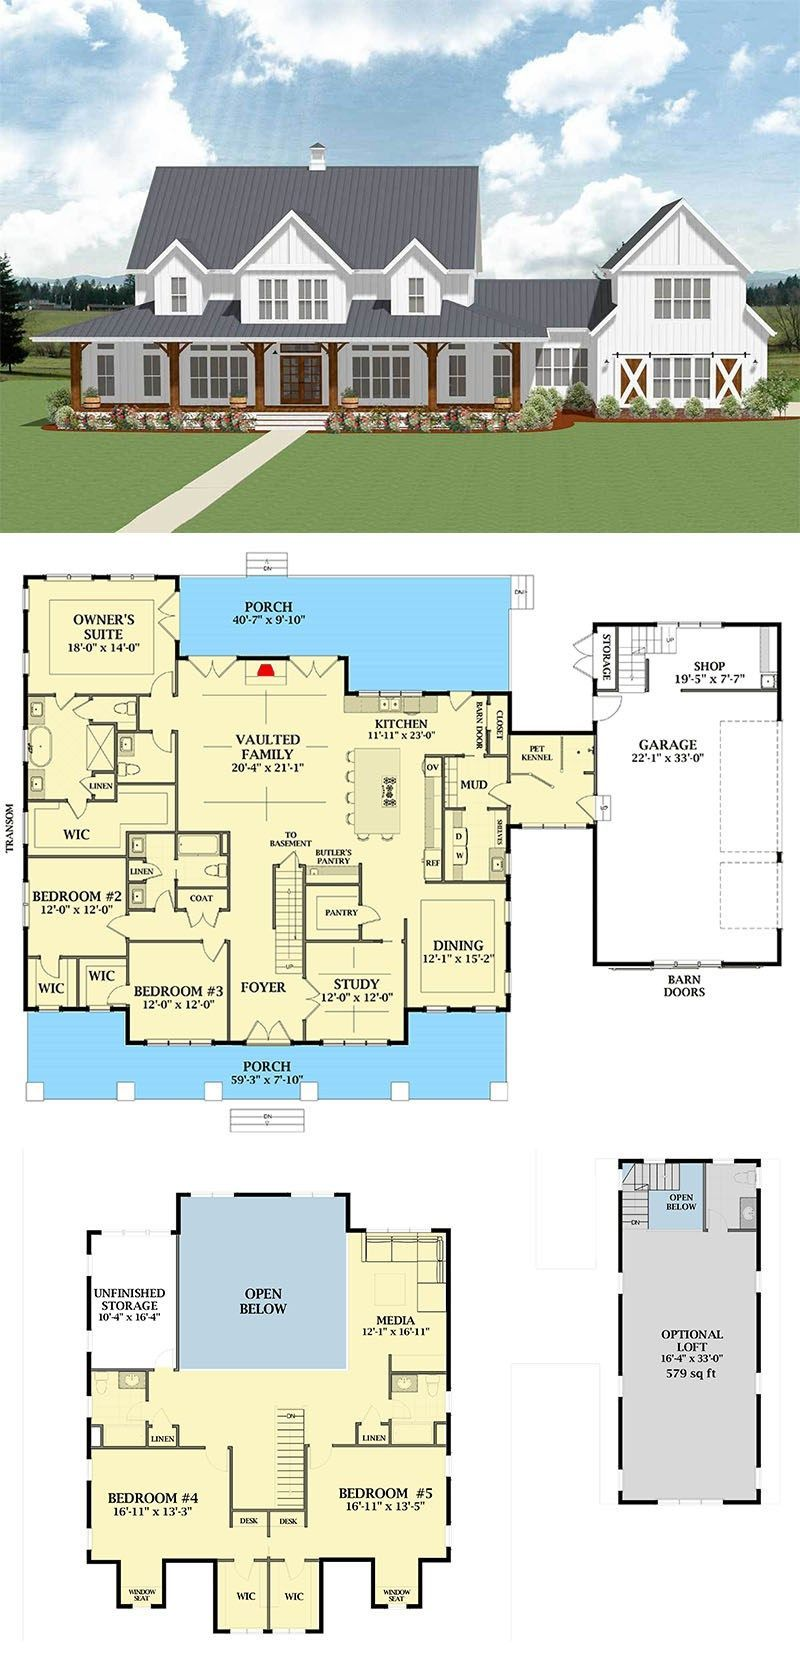 Most Popular Farmhouse Plans Blueprints Layouts And Details Of The Best Farmhouses On The Mark House Plans Farmhouse House Blueprints Modern Farmhouse Plans